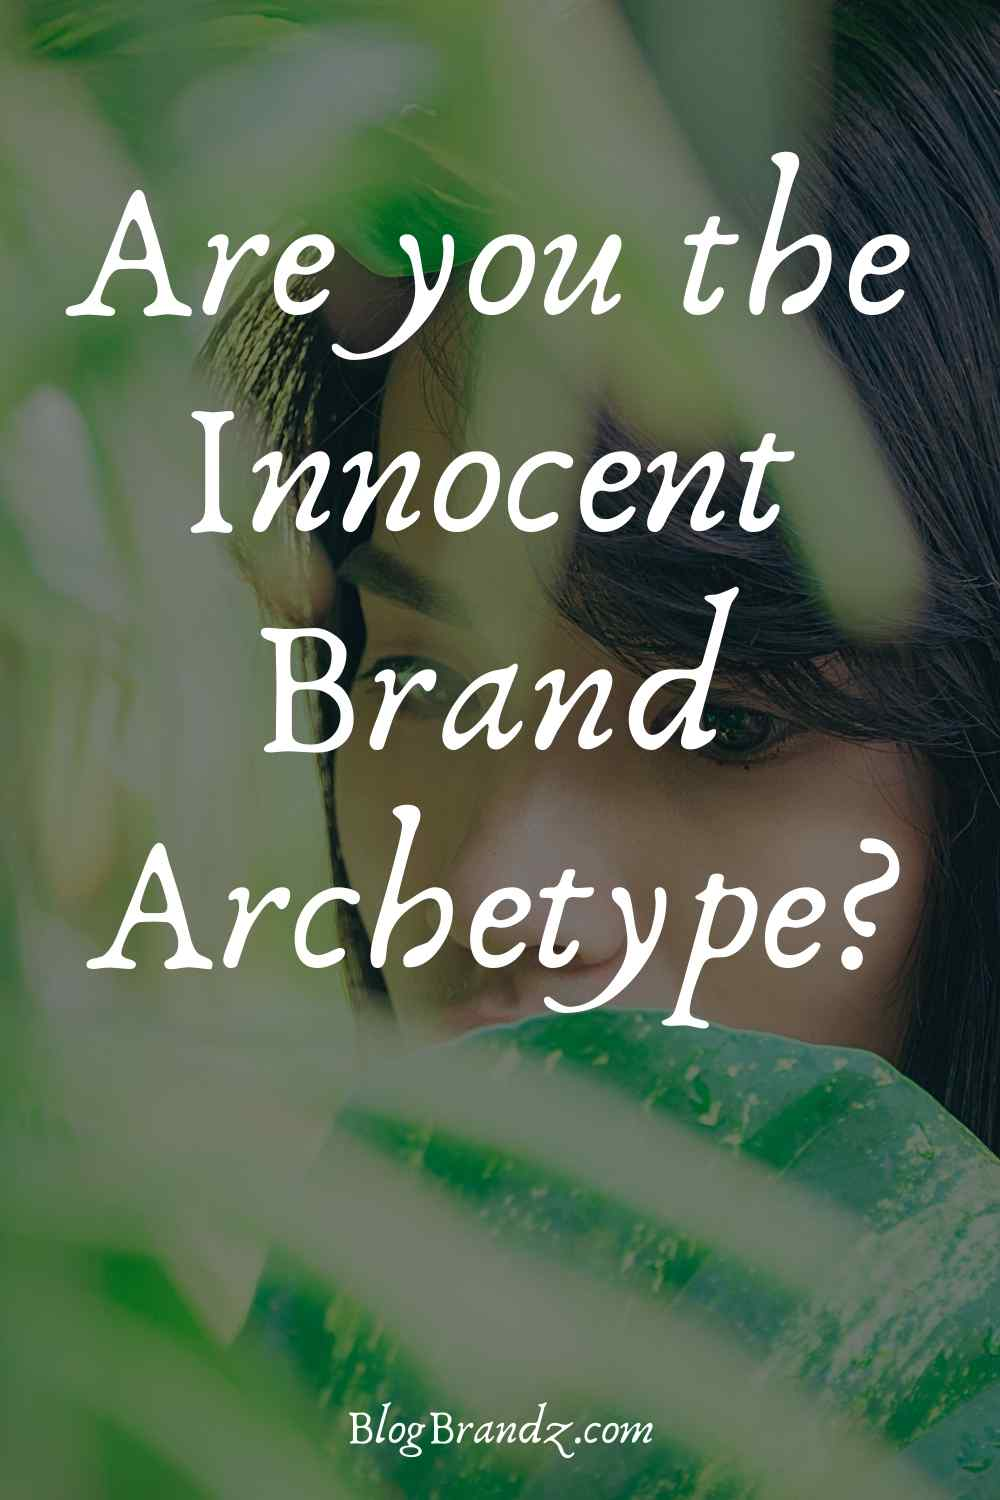 Brand Archetype Innocent